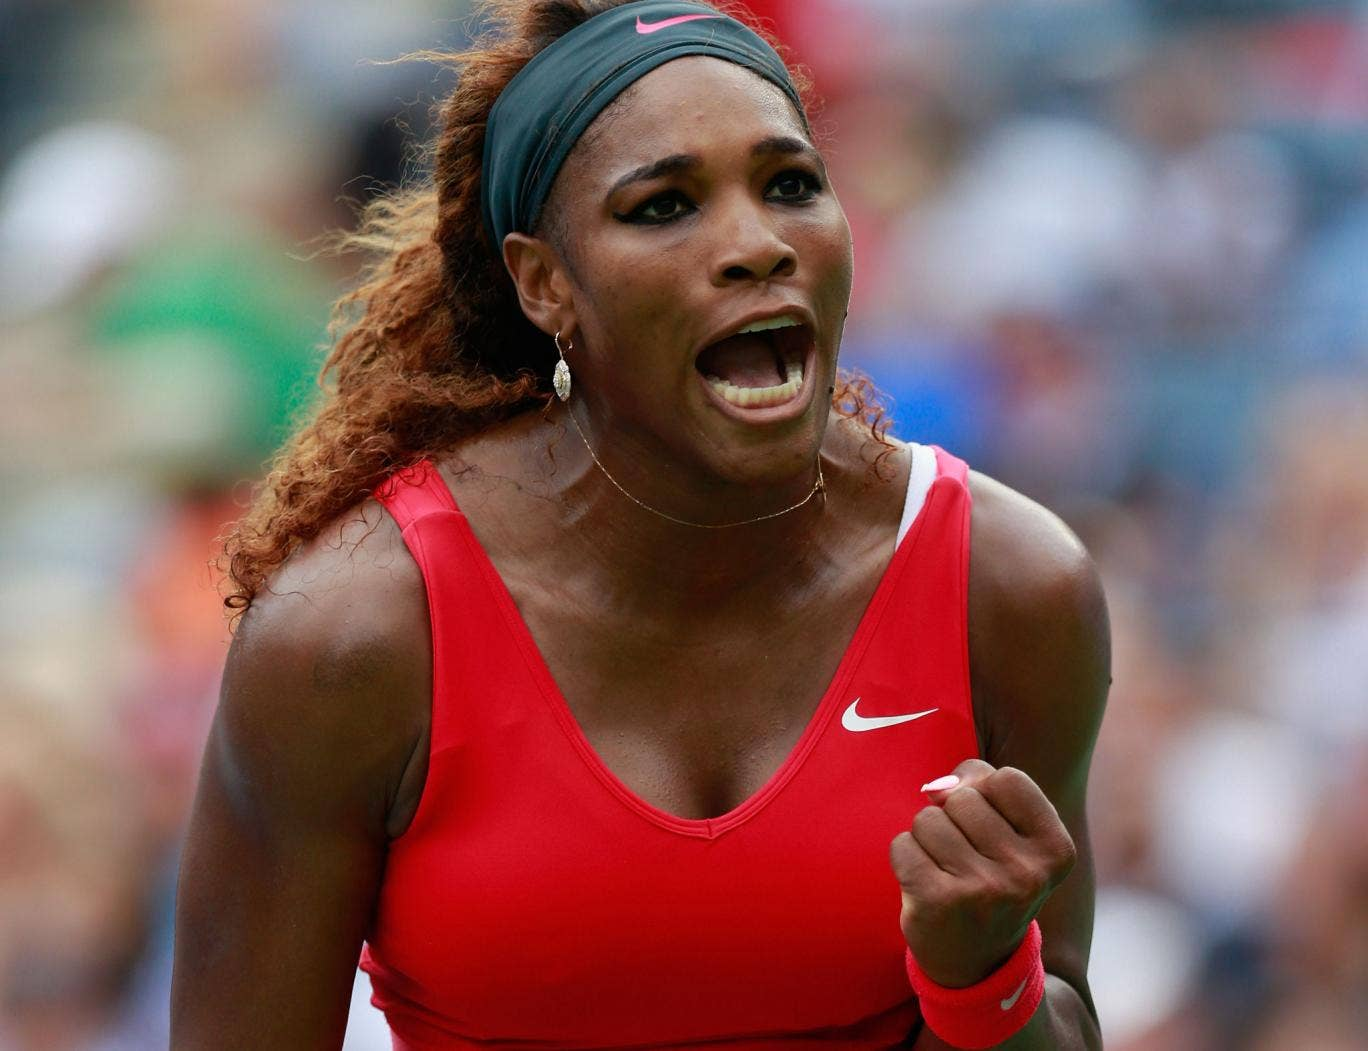 Serena Williams swept past Sloane Stephens and into the quarter-finals of the US Open